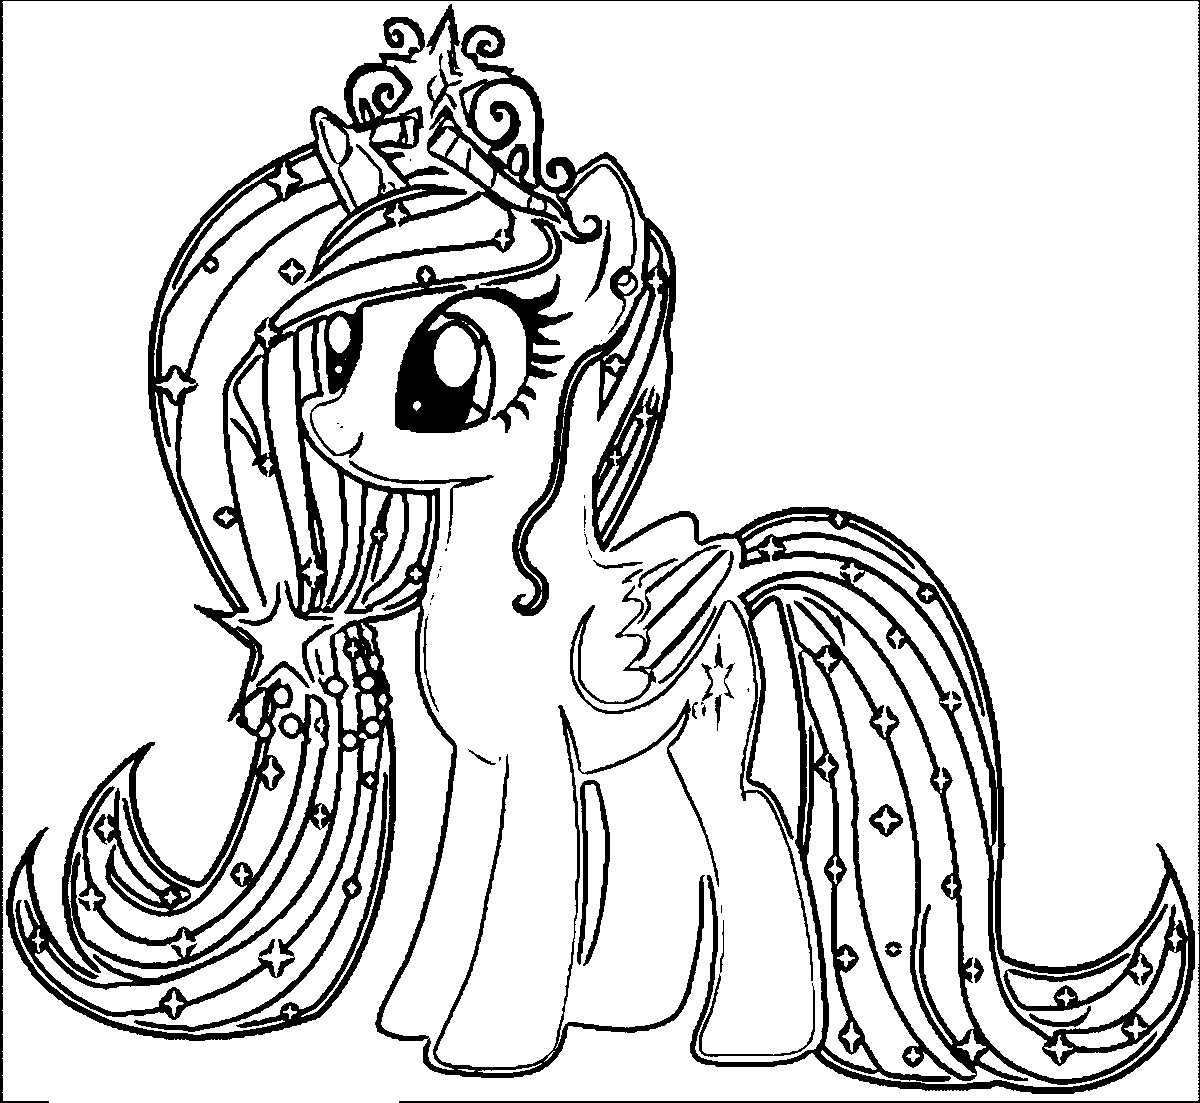 my little ponies coloring pages my little pony coloring pages printable activity shelter little pages my ponies coloring